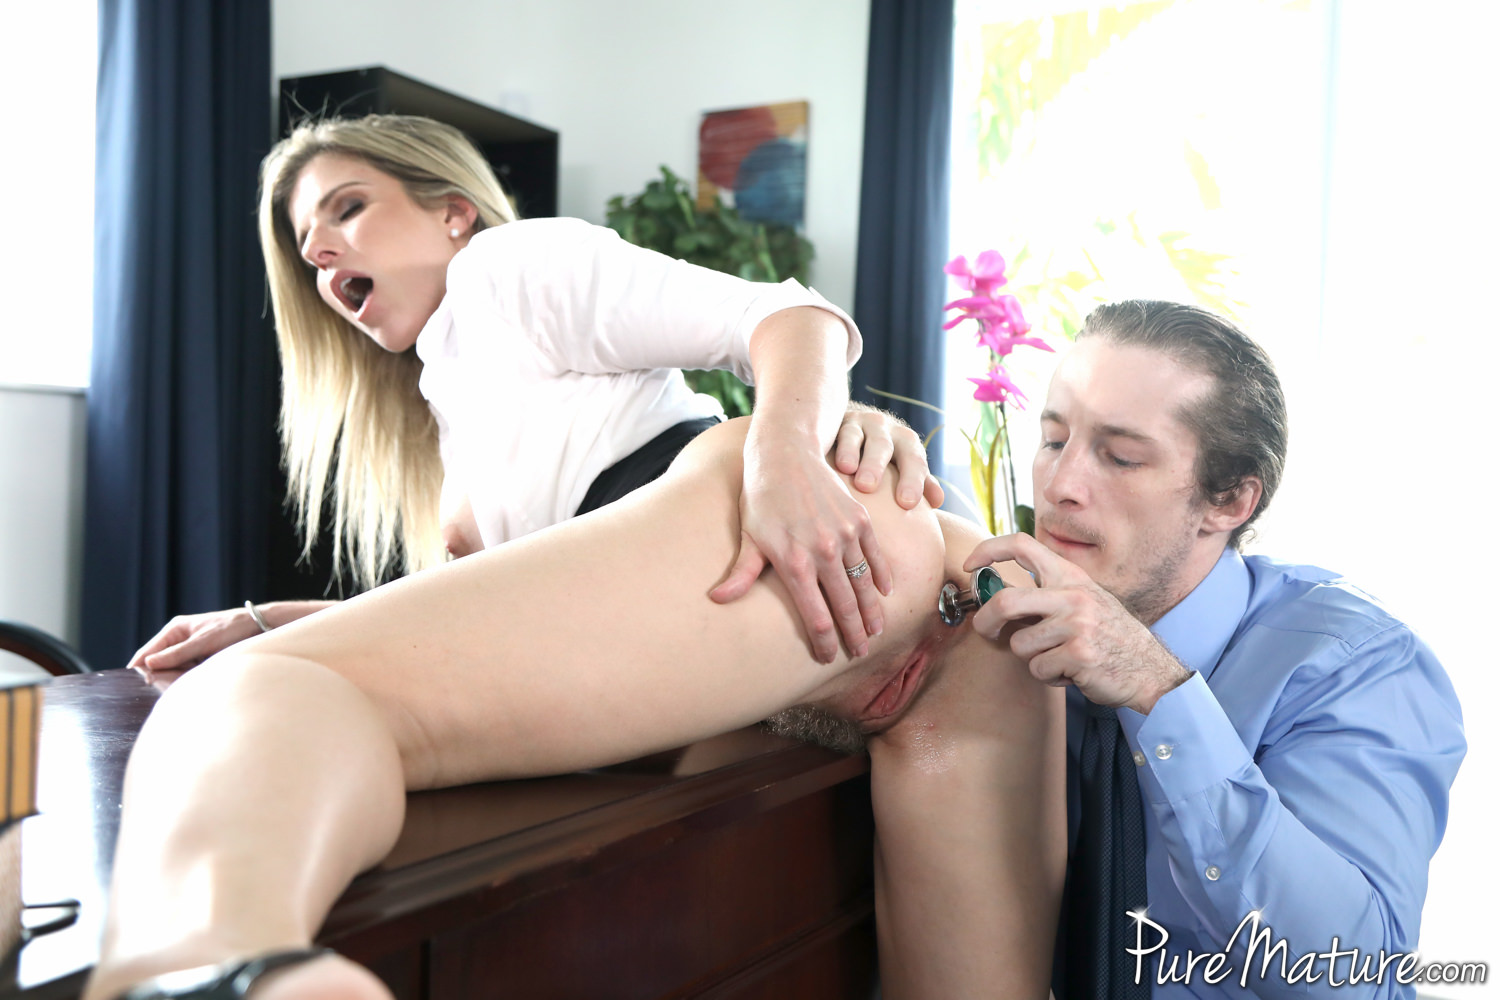 Puremature milf cory chase fuck amd facial after run in park - 1 8